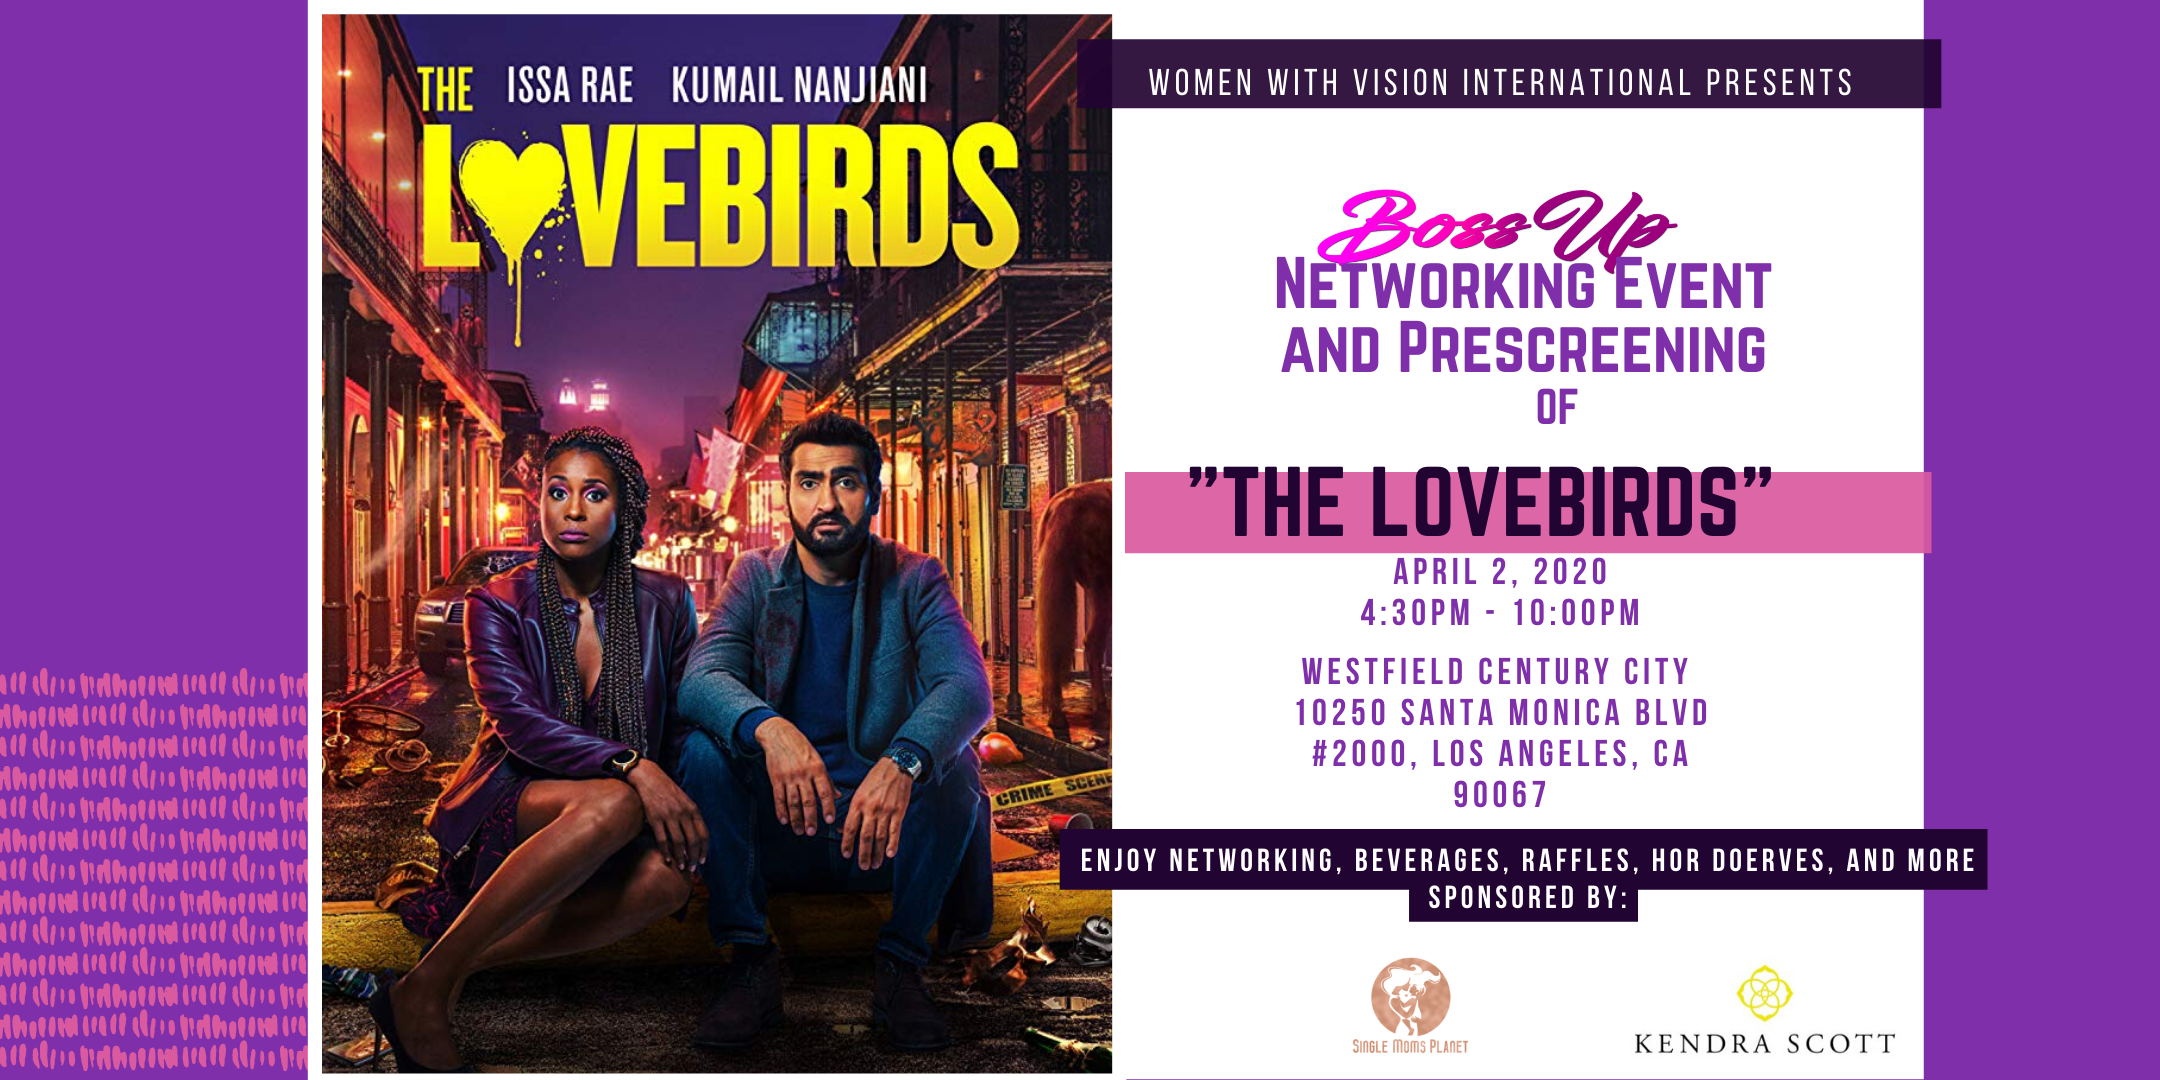 "BossUp Networking Event and ""The LoveBirds"" Movie Prescreening"